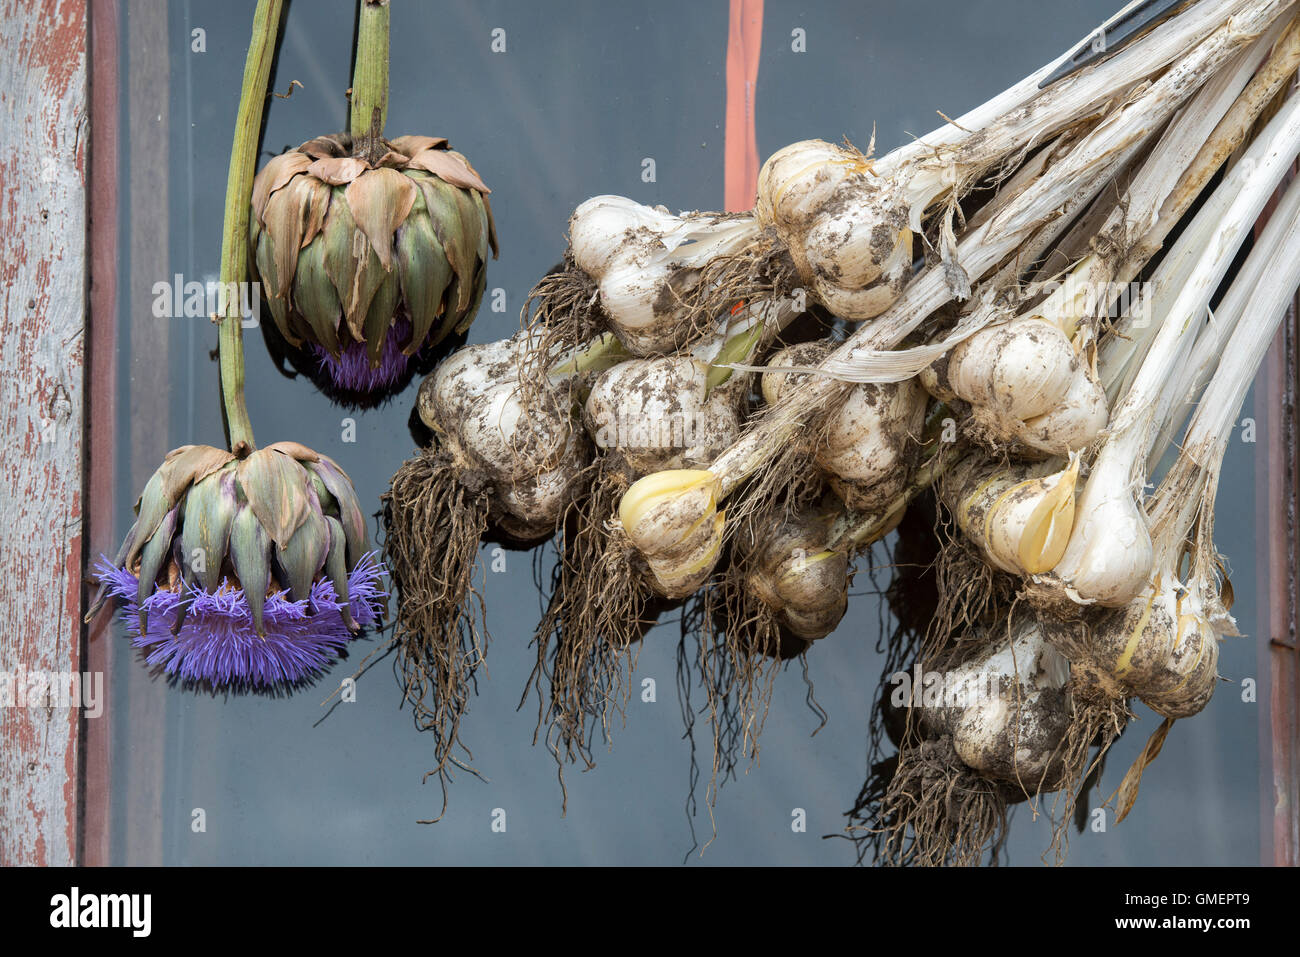 Globe artichoke flowers and Elephant garlic bulbs hanging in front of a garden shed window - Stock Image